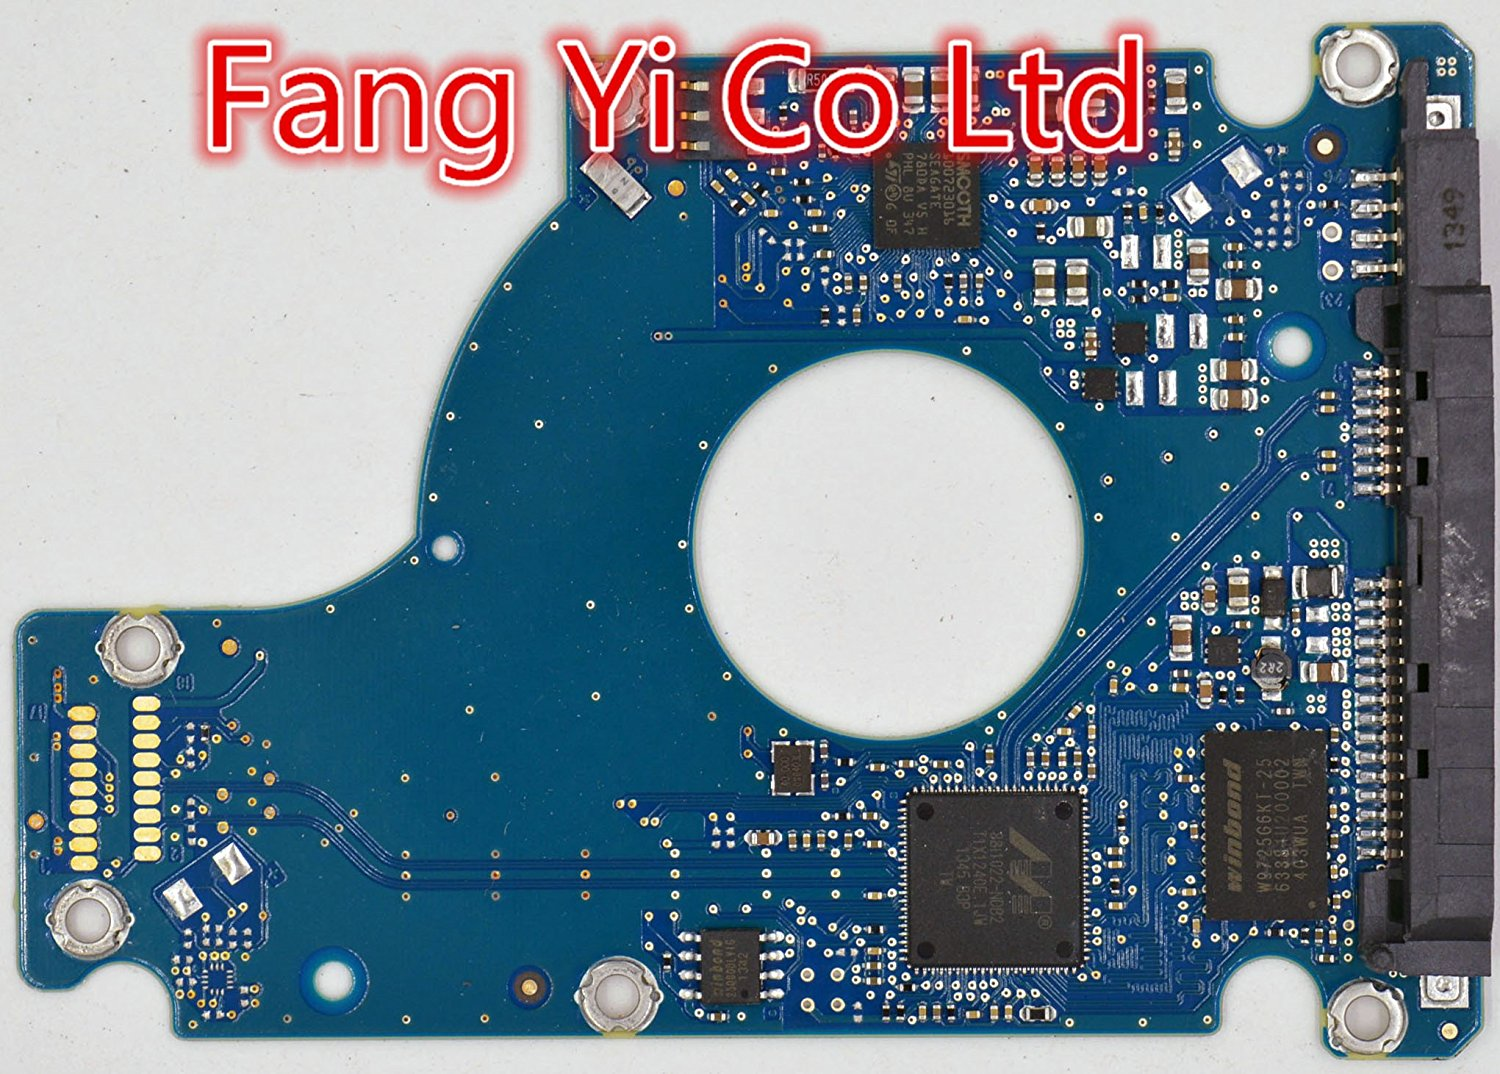 Uniroi 35pcs Double Sided Pcb Board Prototype Kit 5 Sizes Universal Printed Electronic Circuit For Diy Soldering And